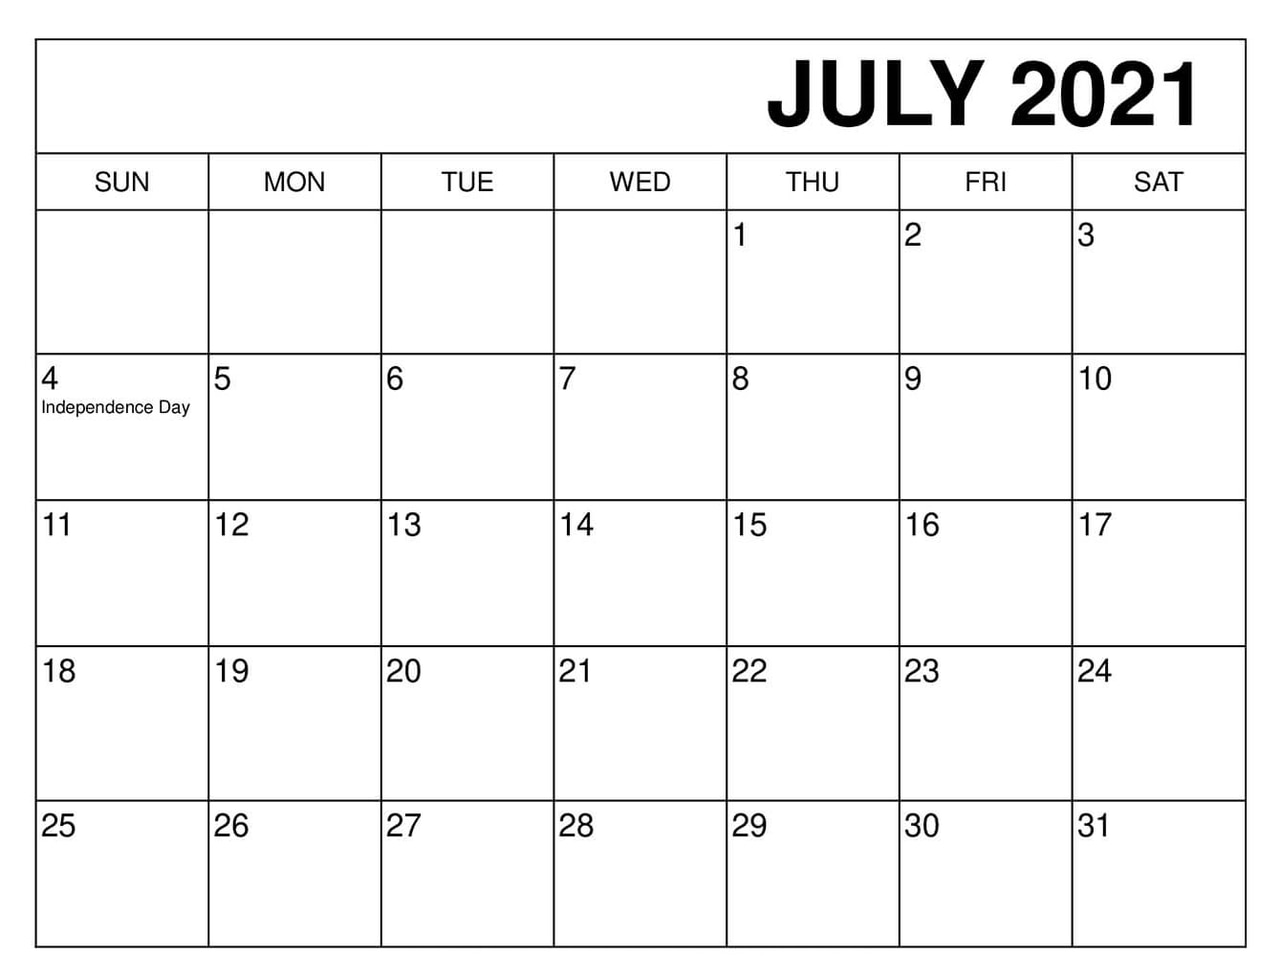 article and july_2021 image